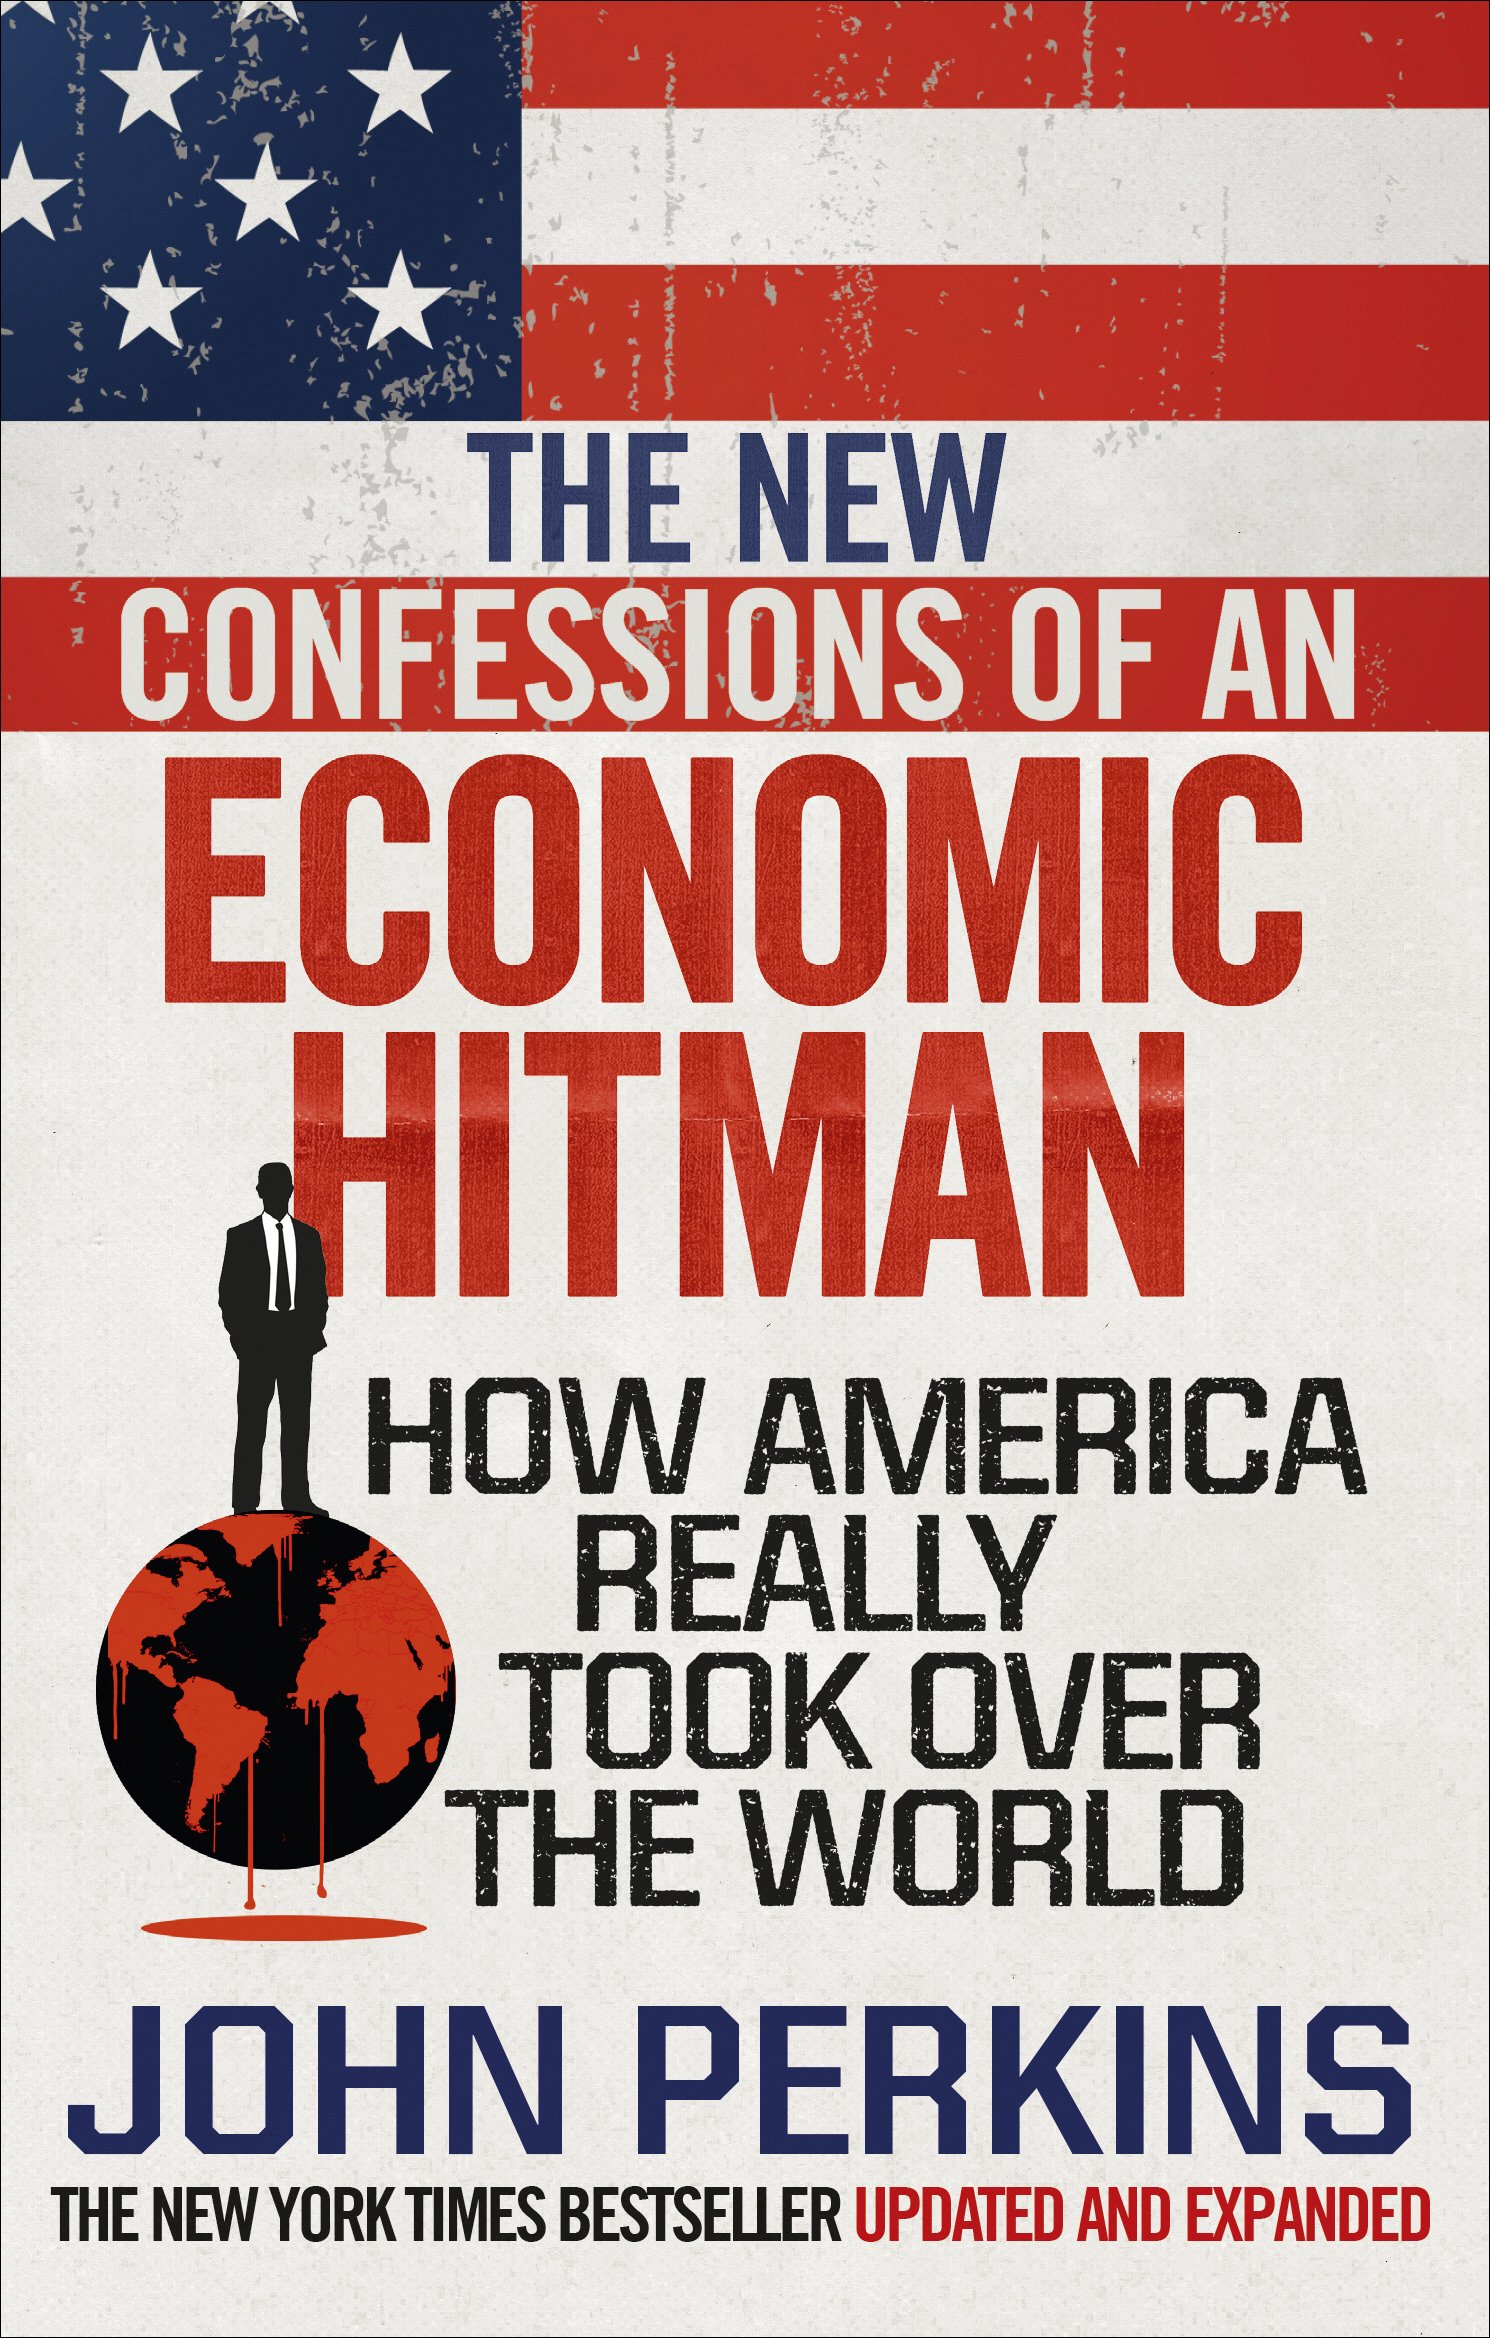 The New Confessions of an Economic Hit Man thumbnail